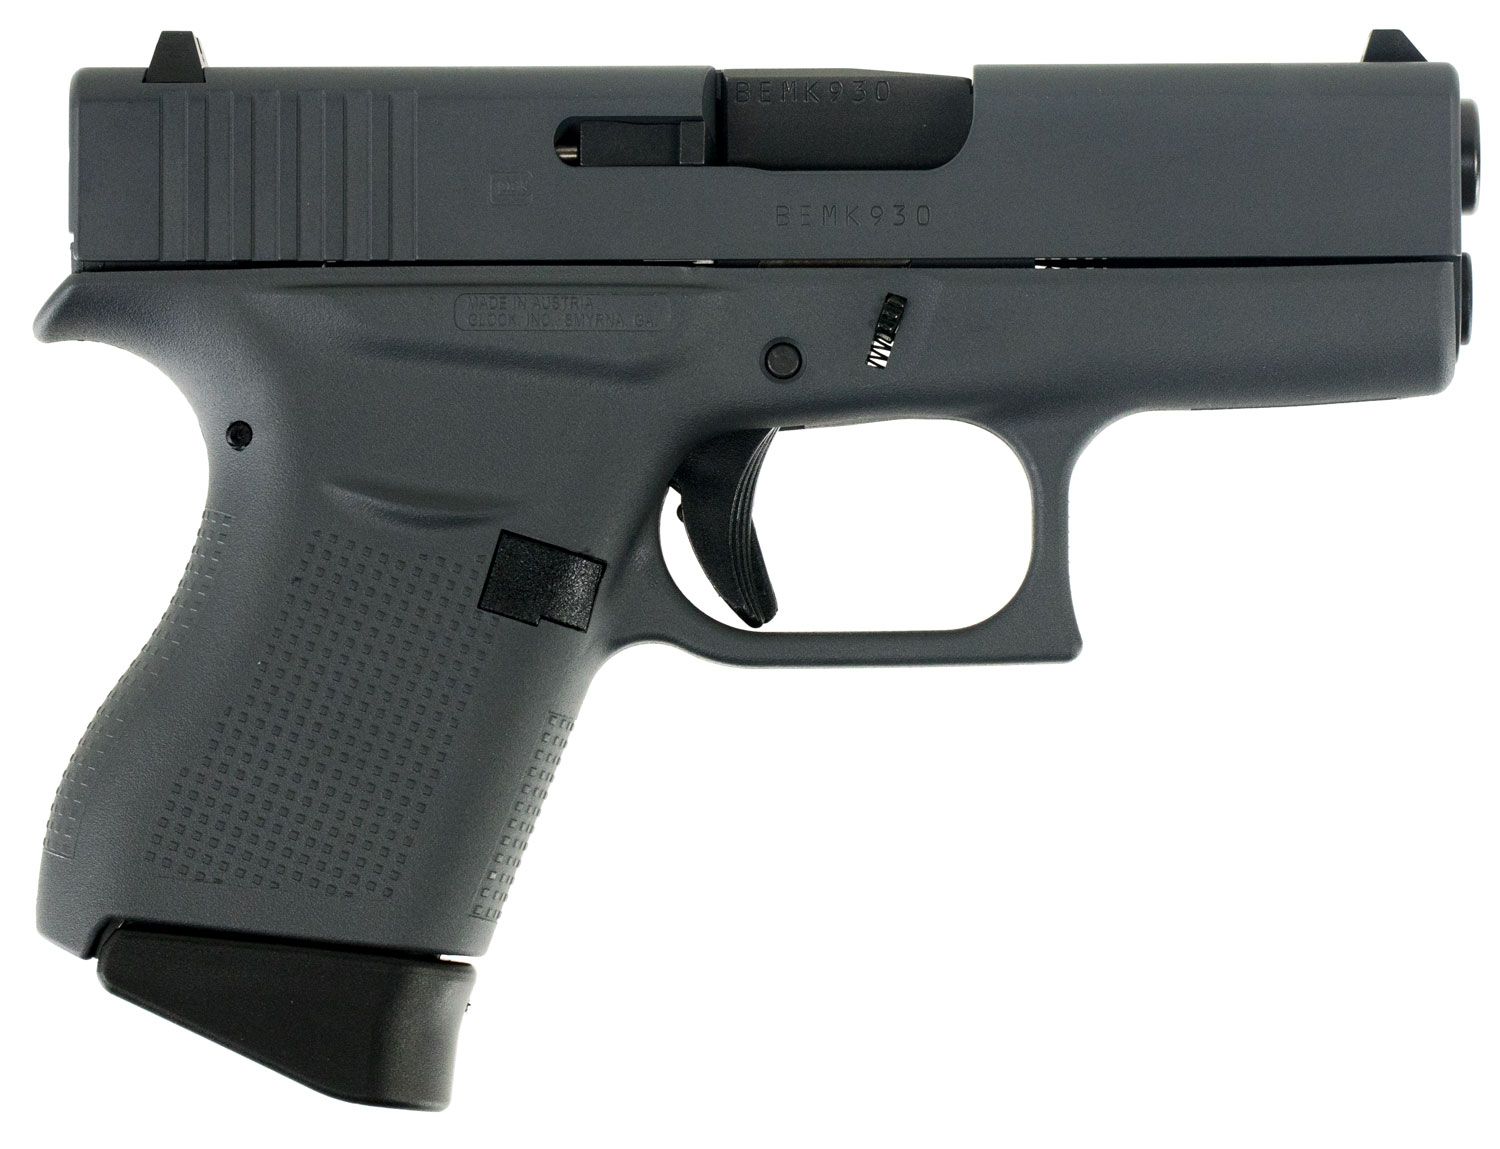 Glock PI4350201SNP G43 Subcompact Double 9mm Luger 3.39